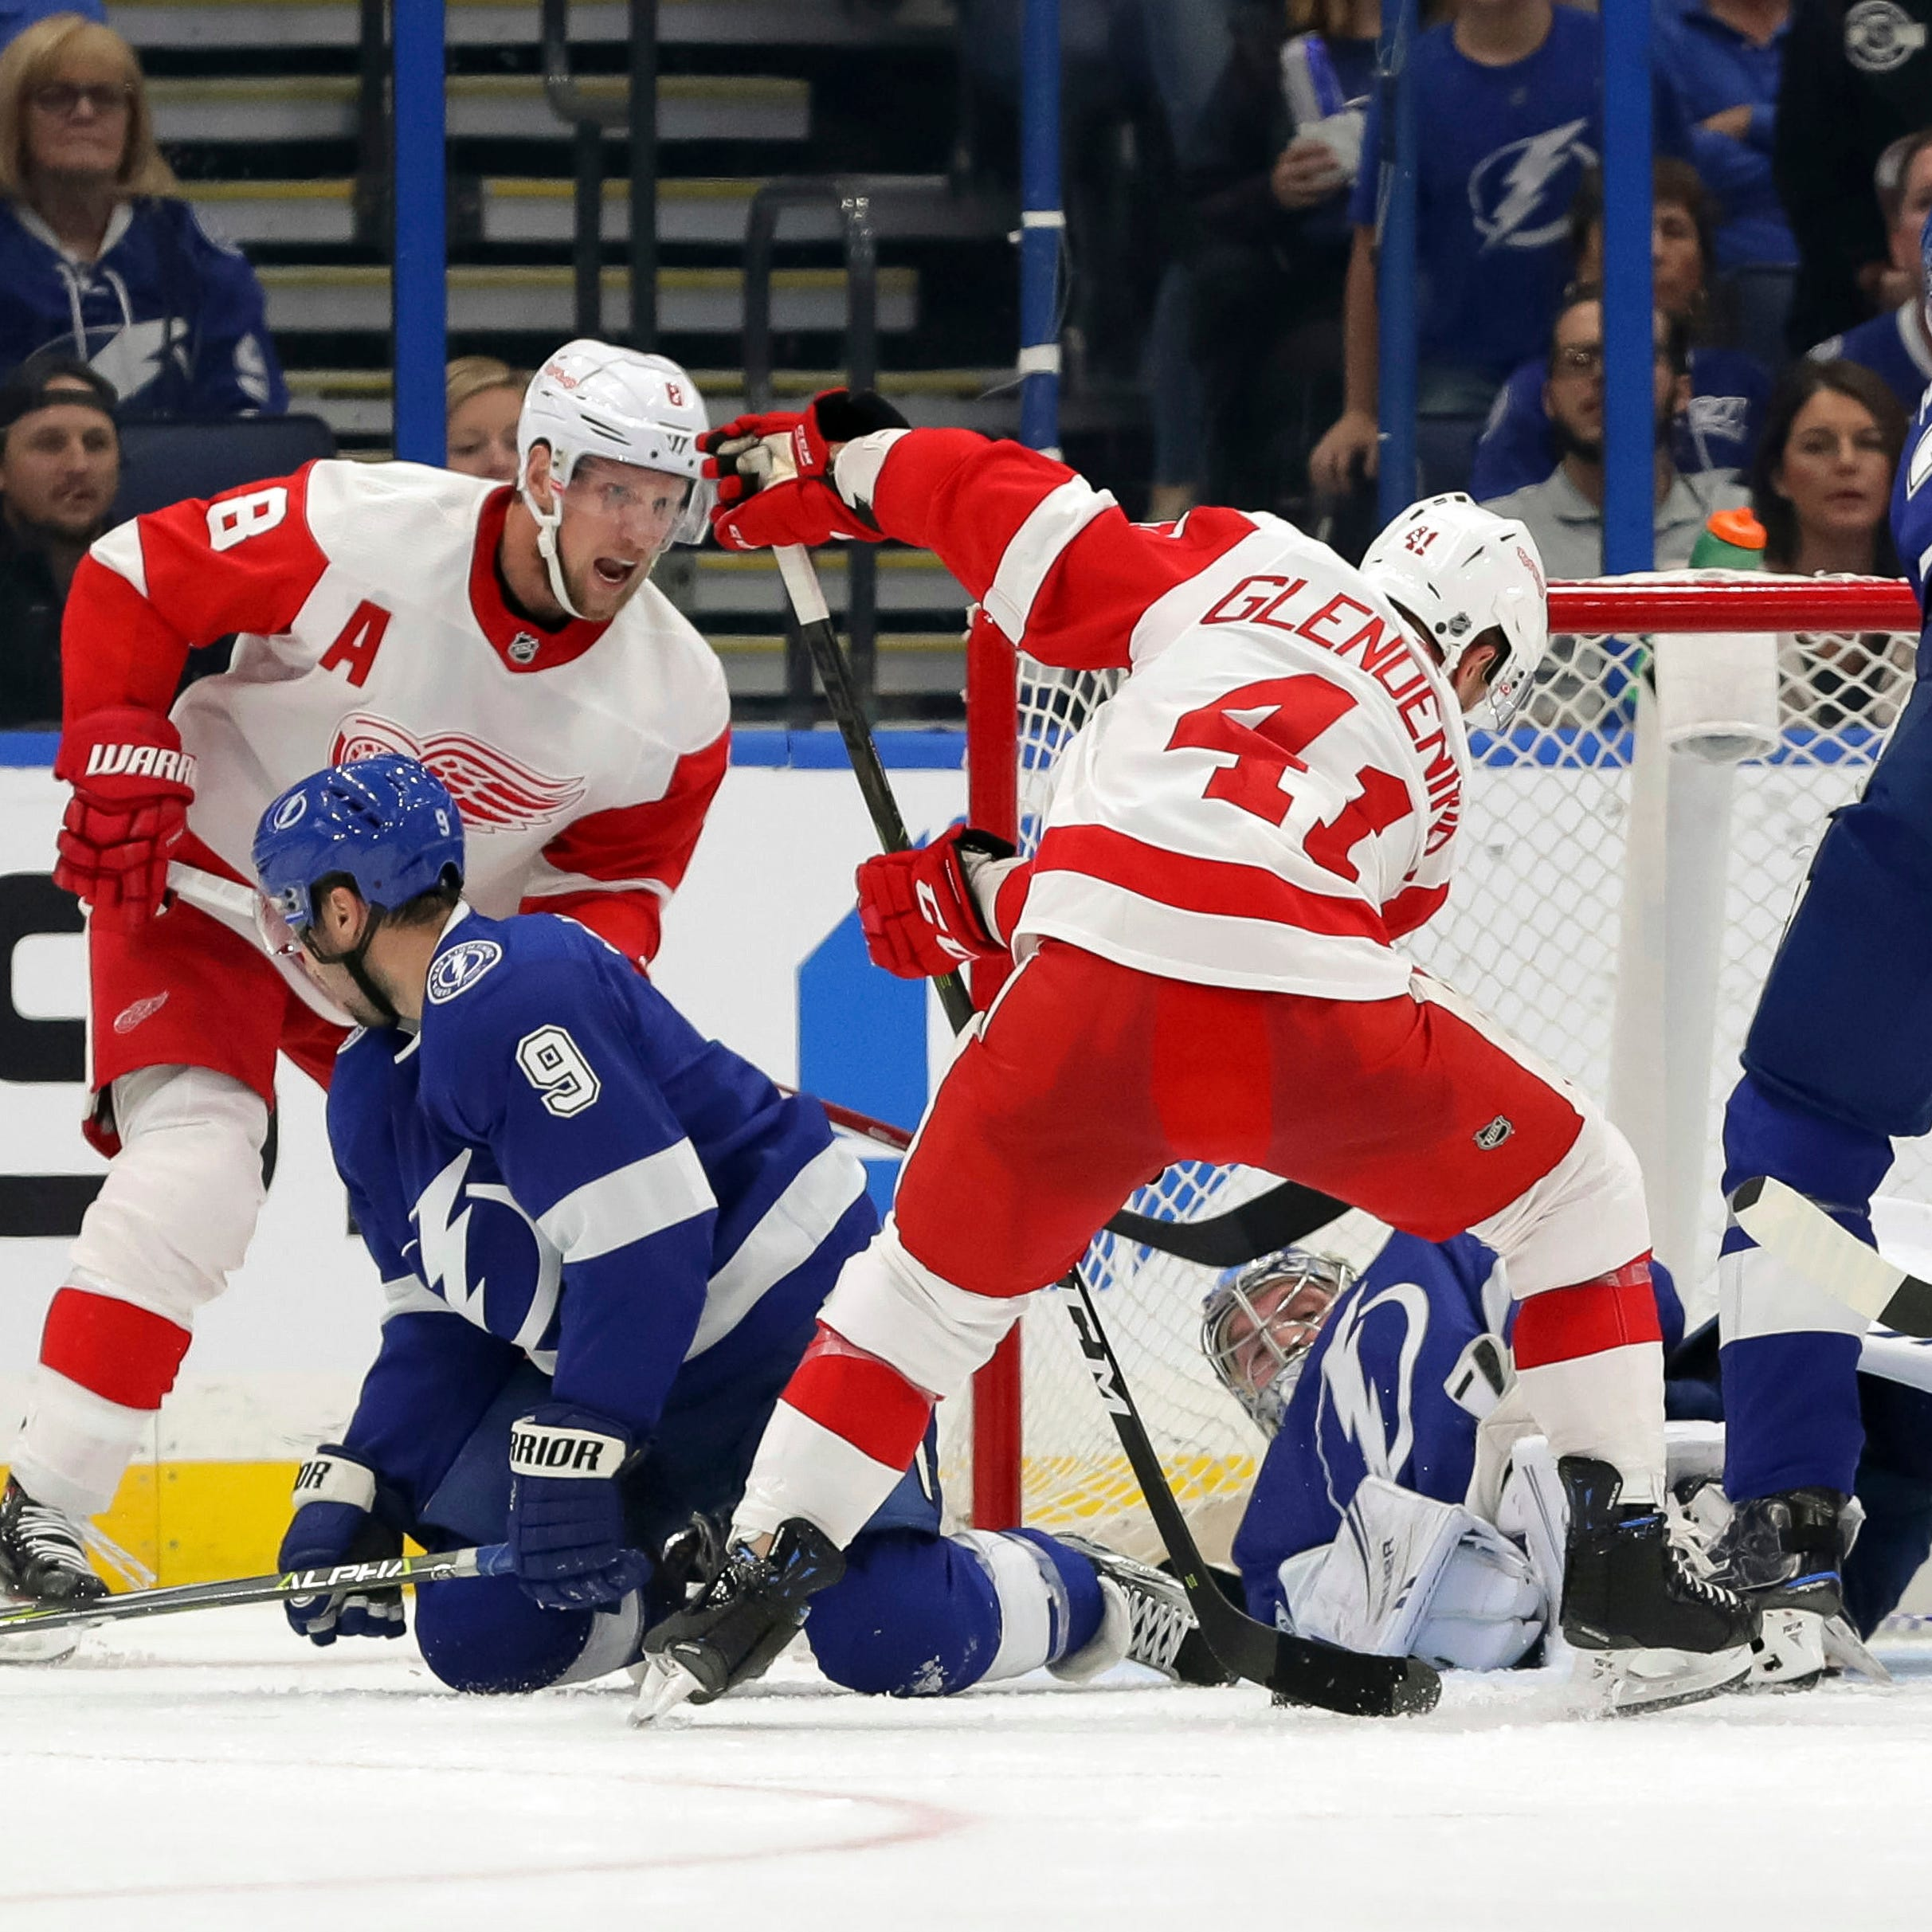 Detroit Red Wings need a win. Here's what they need to do better